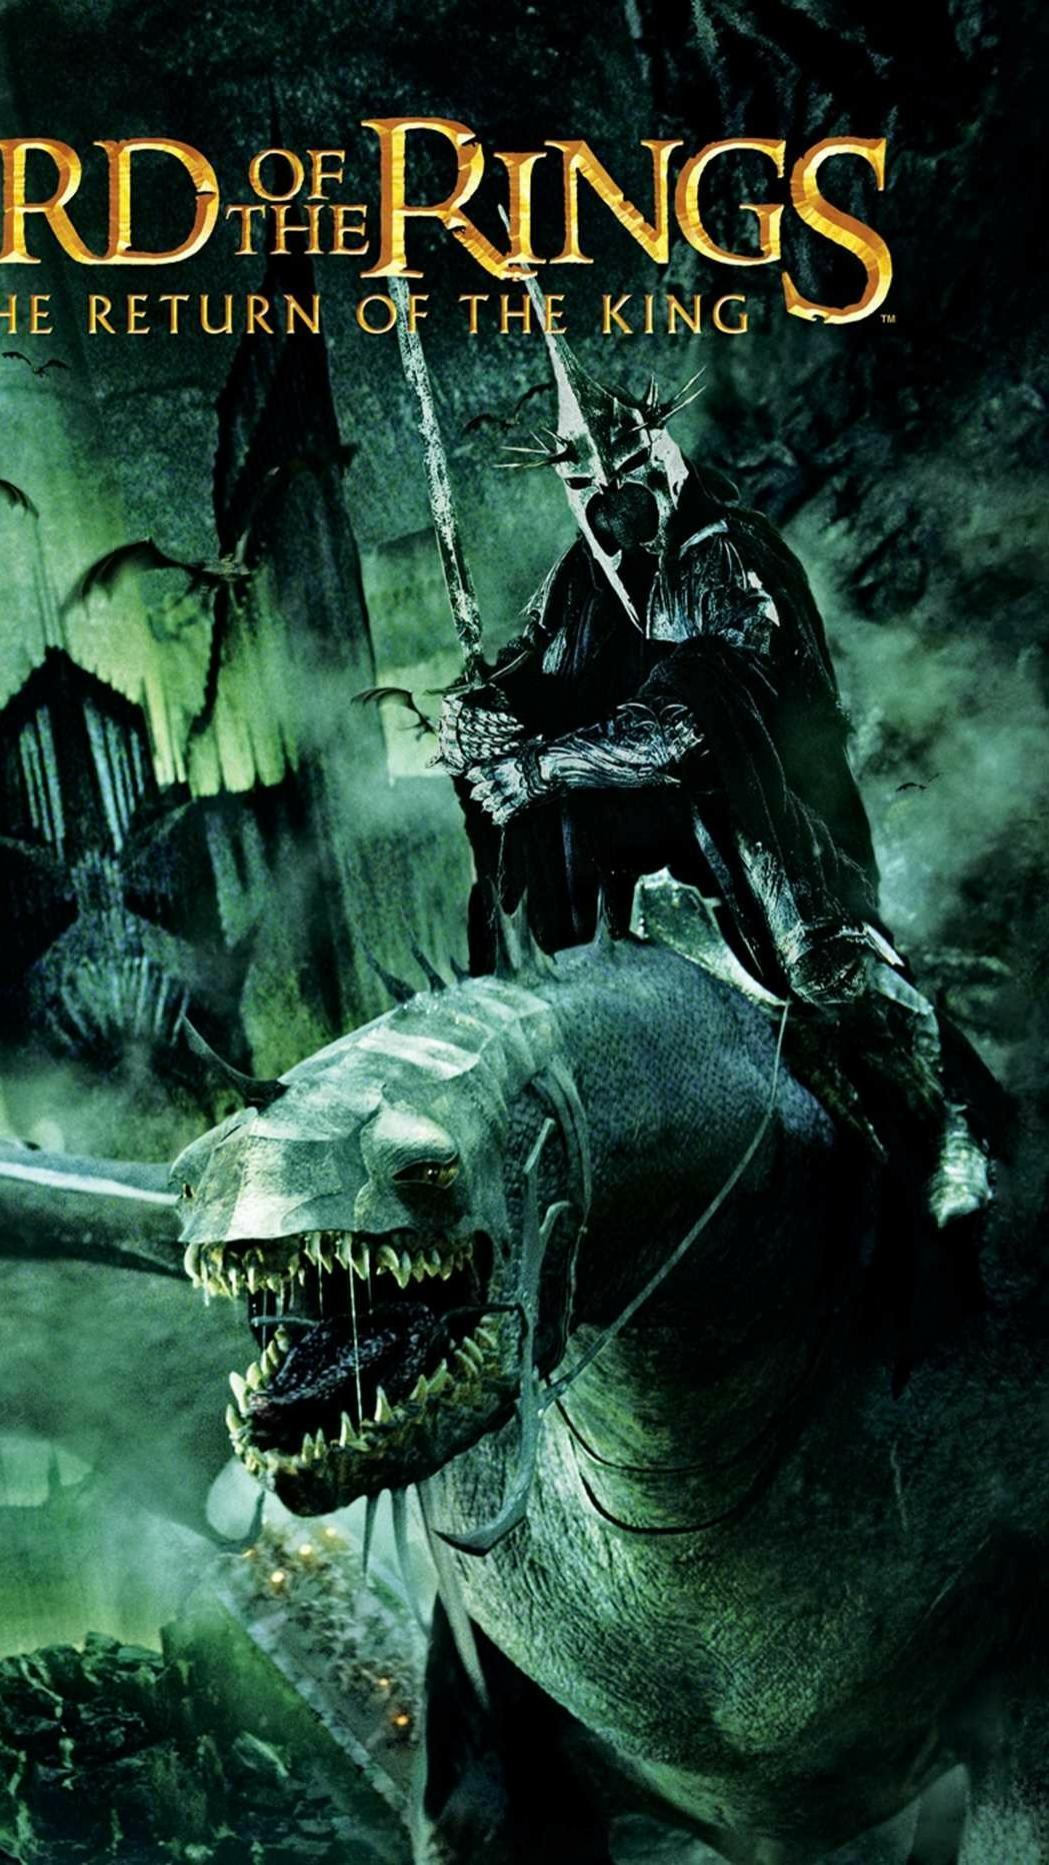 Ultimate Lord Of The Rings Wallpaper Collection For Android Apk